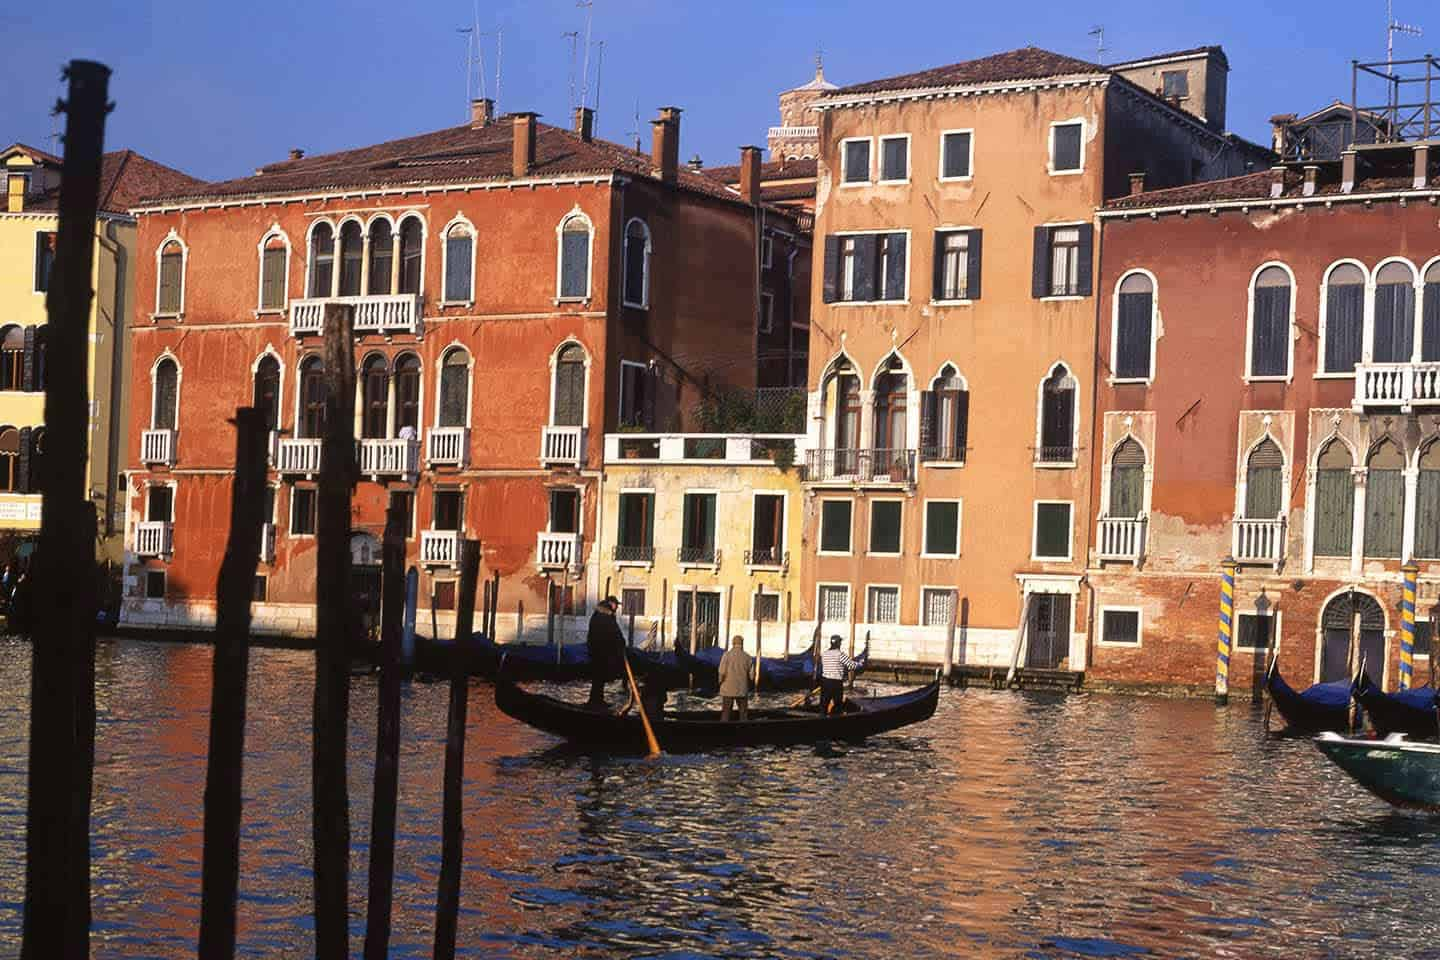 Image of a traghetto crossing the Grand Canal in Venice